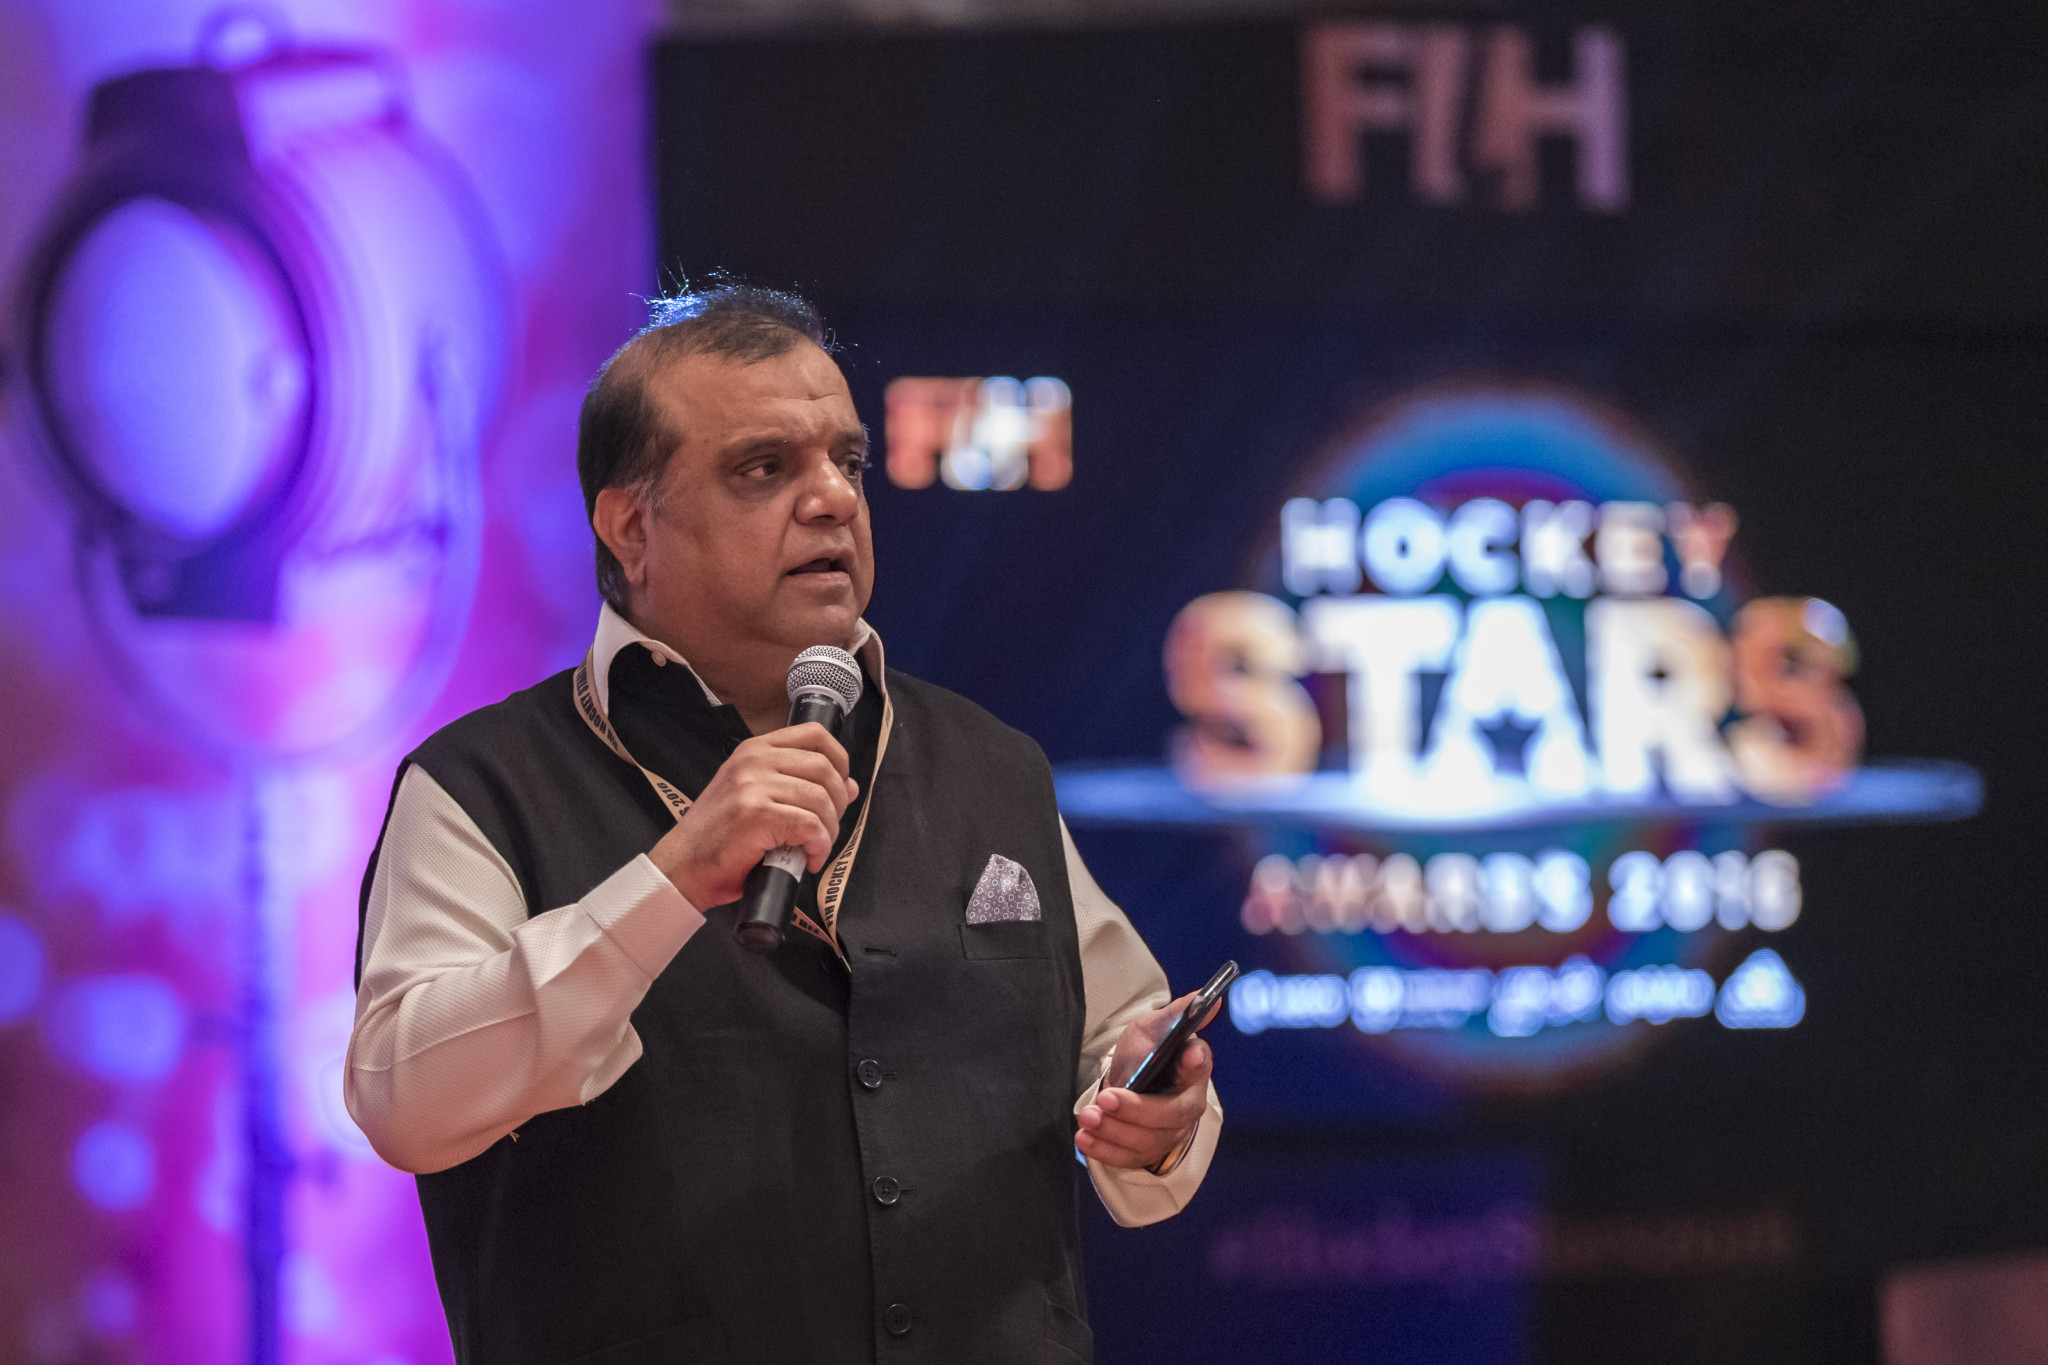 Indian Olympic Association President Narinder Batra has promised AGM will have the final say on a possible boycott of Birmingham 2022 in protest at the exclusion of shooting ©Getty Images